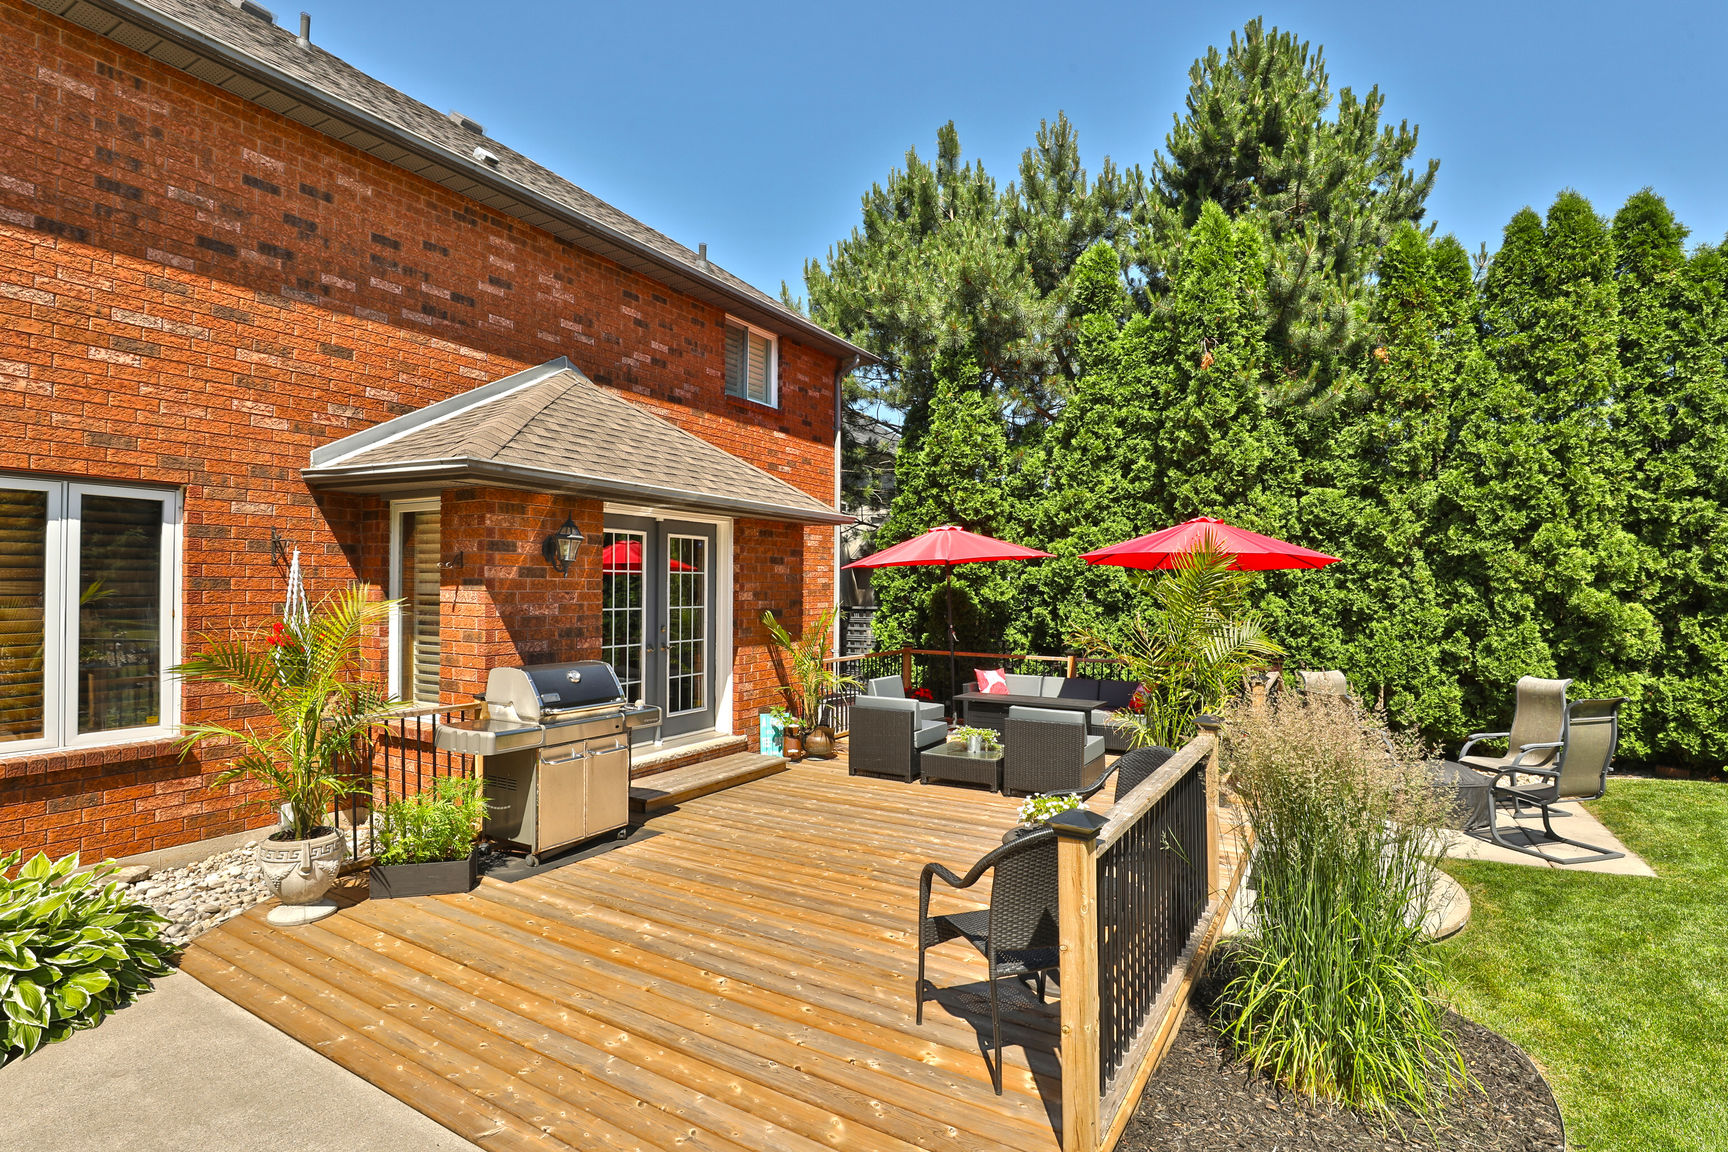 85 Galley back patio 1 - Recently SOLD in Ancaster